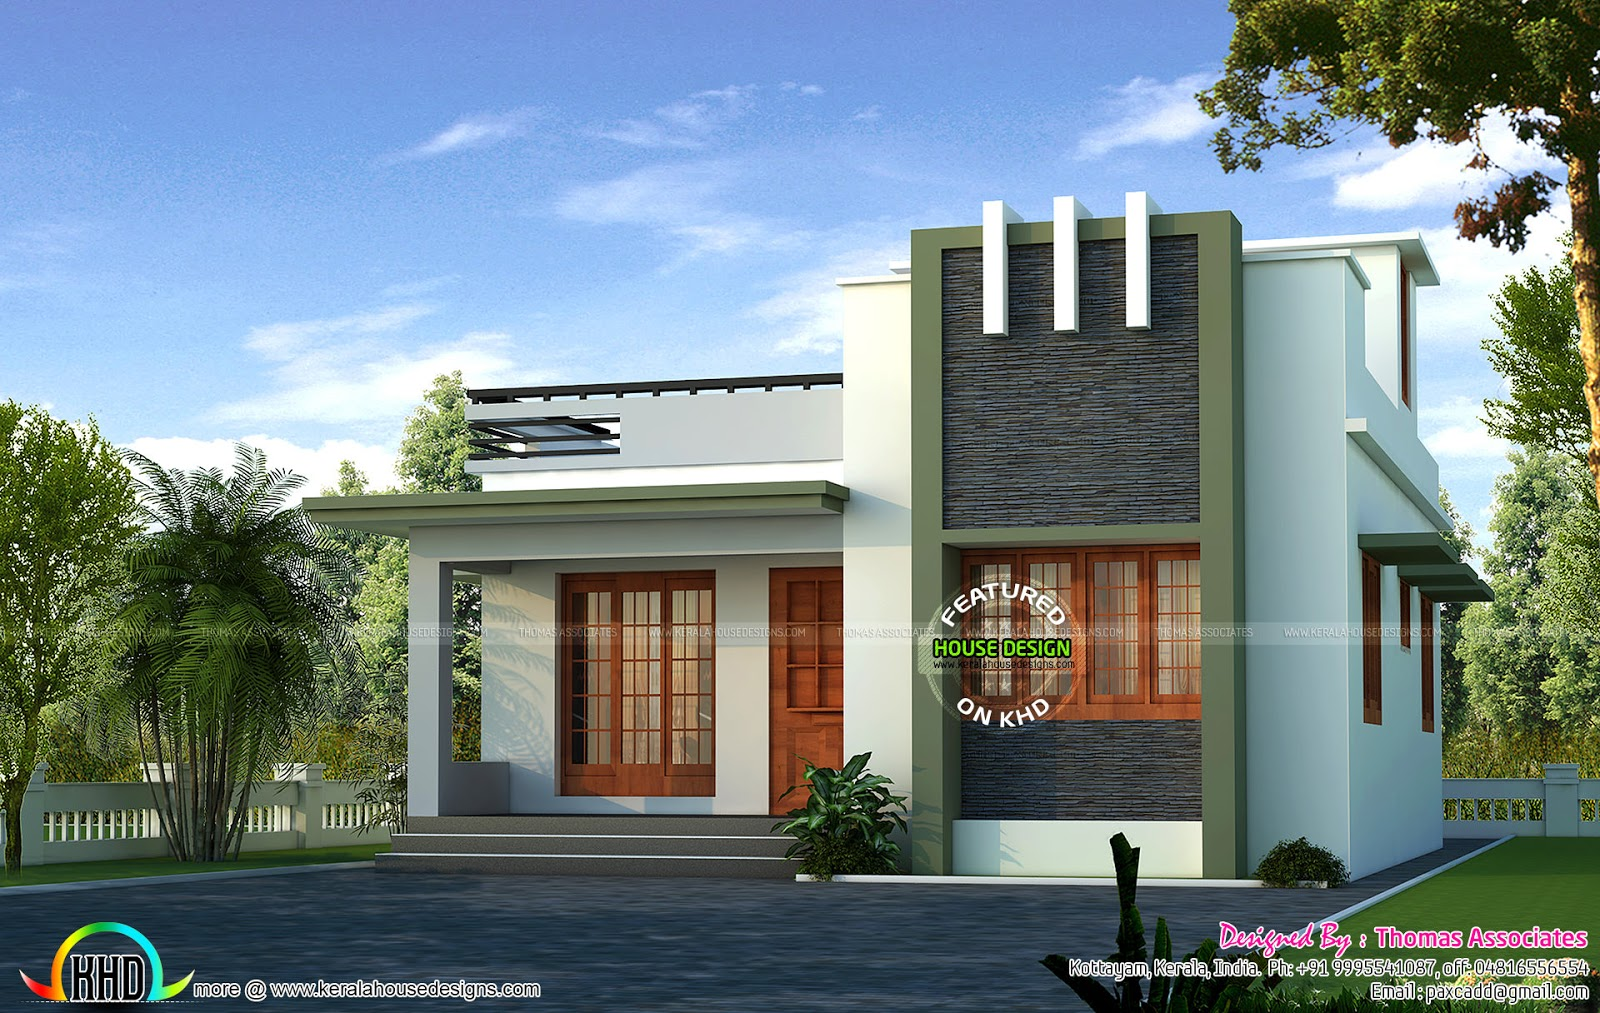 35 small and simple but beautiful house with roof deck for Beautiful house ideas